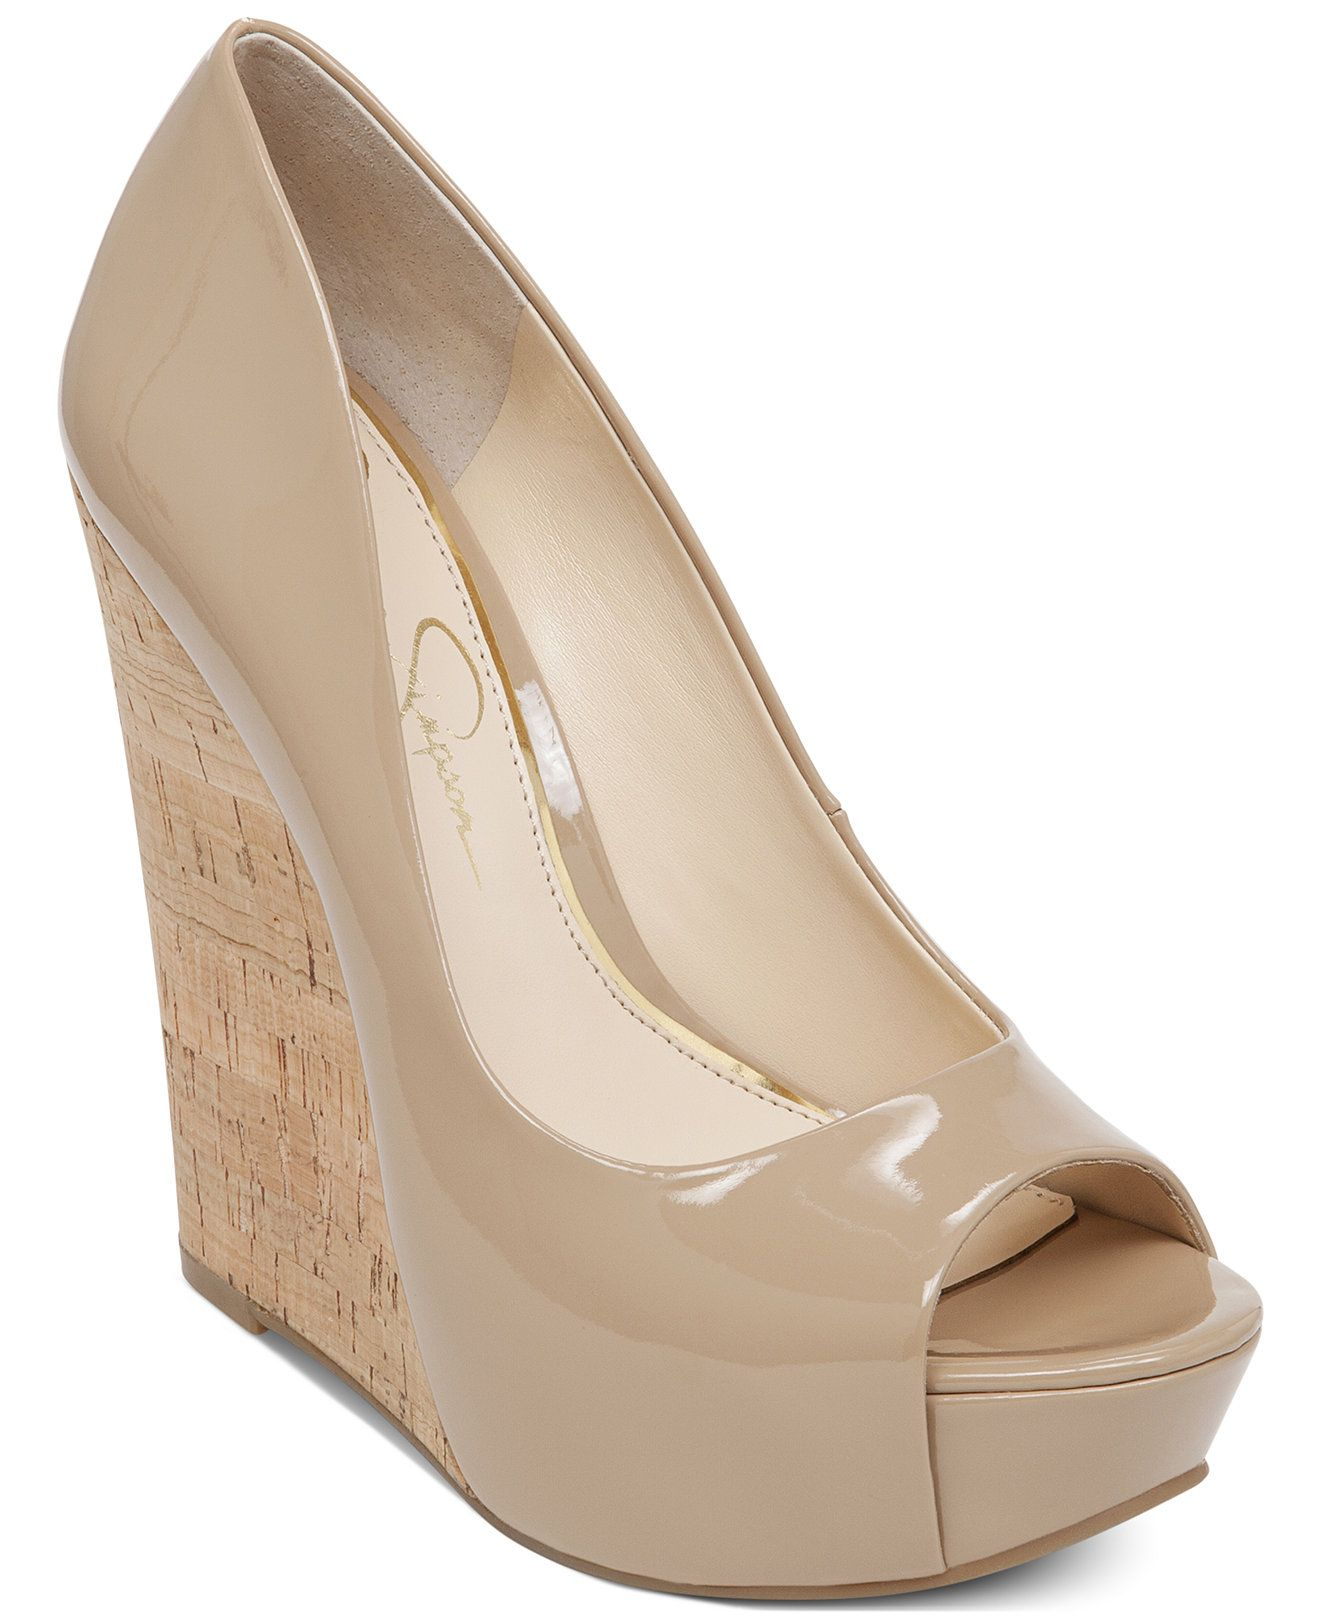 11e93c0ba24d Code  GREAT Jessica Simpson Bethani Cork Platform Wedge Pumps - Pumps -  Shoes - Macy s